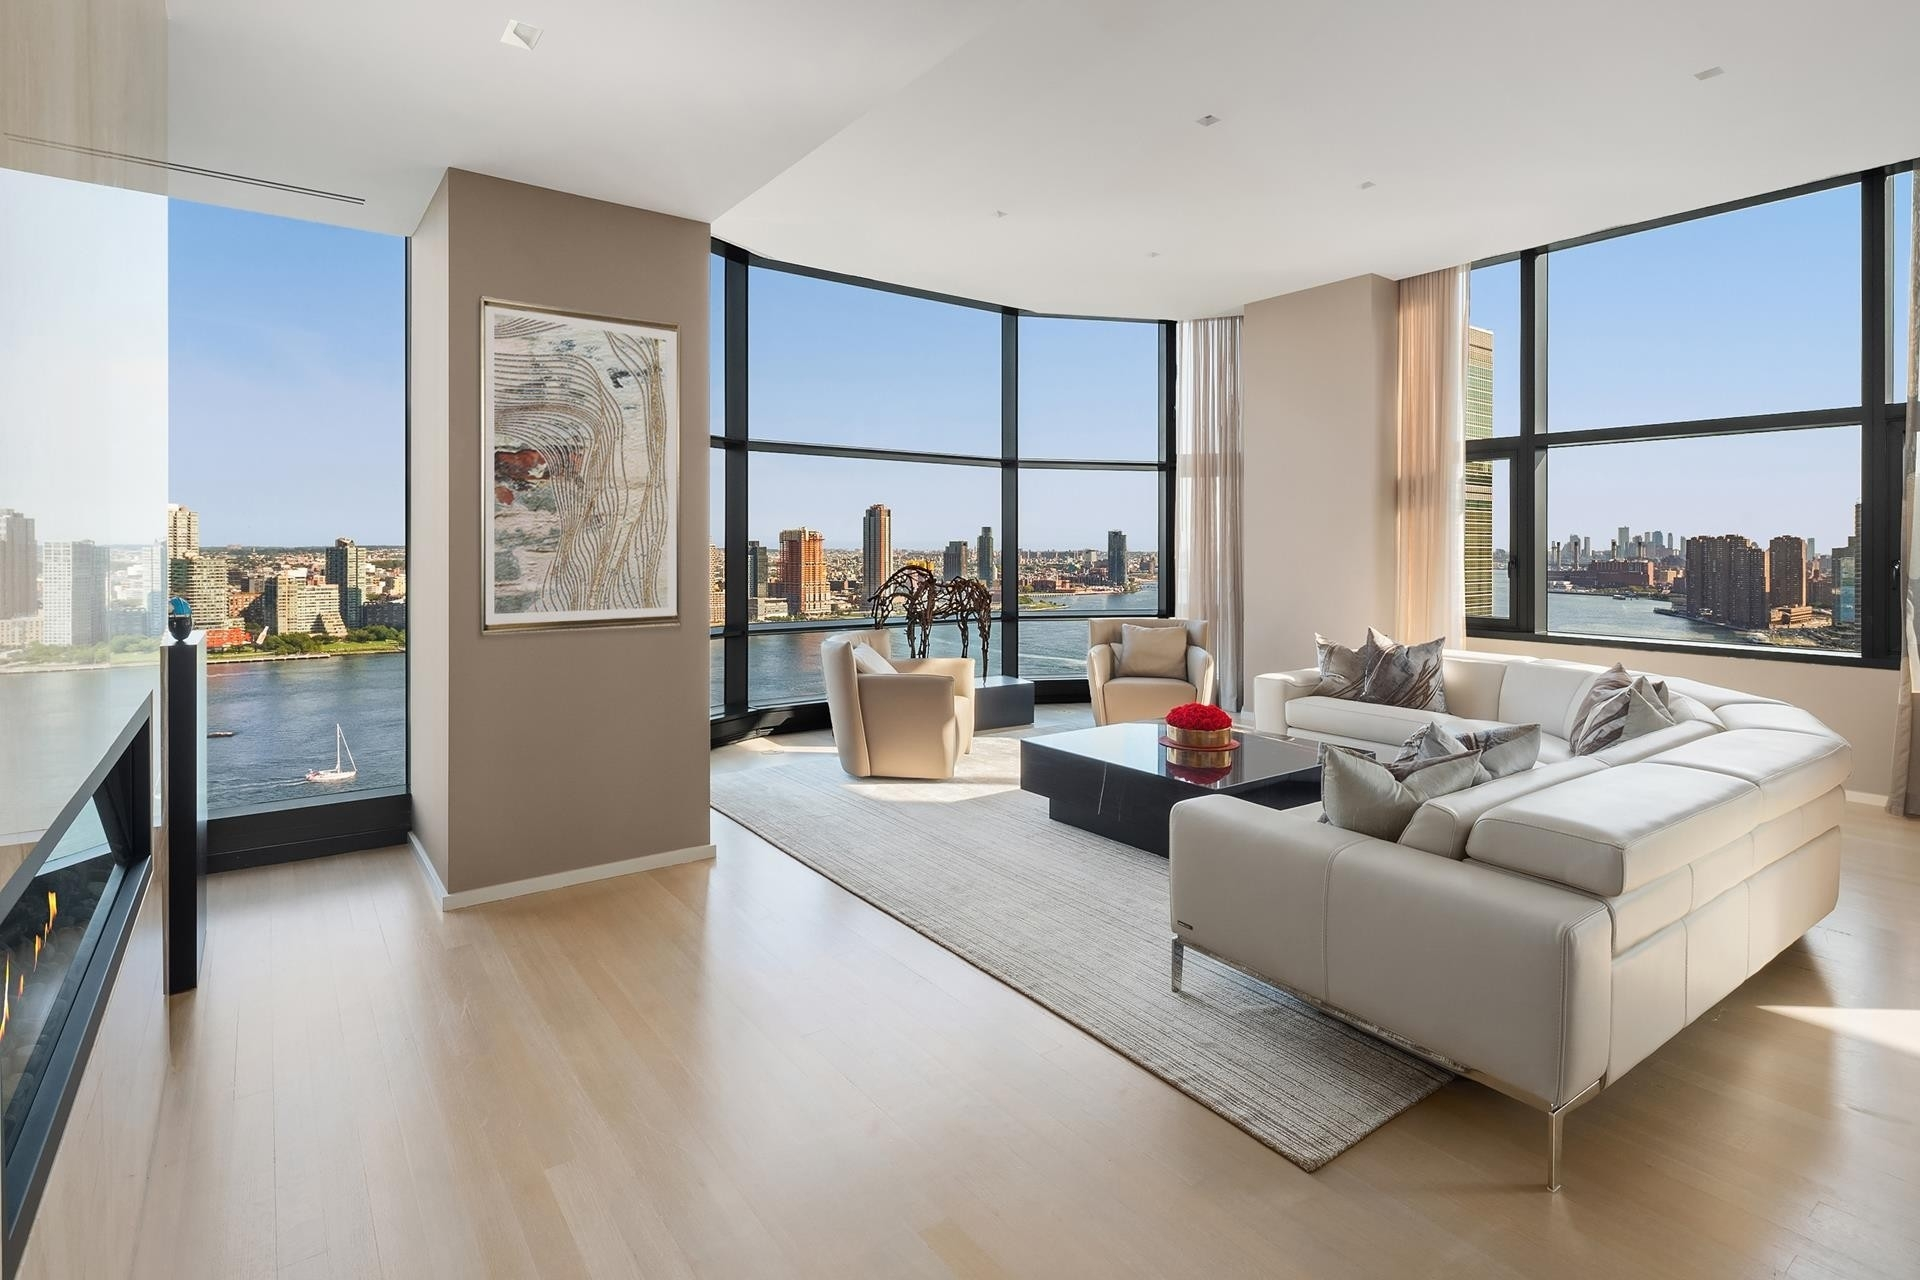 Property at 50 United Nations Plaza, 50 UNITED NATIONS Plaza, 27A Turtle Bay, New York, NY 10017